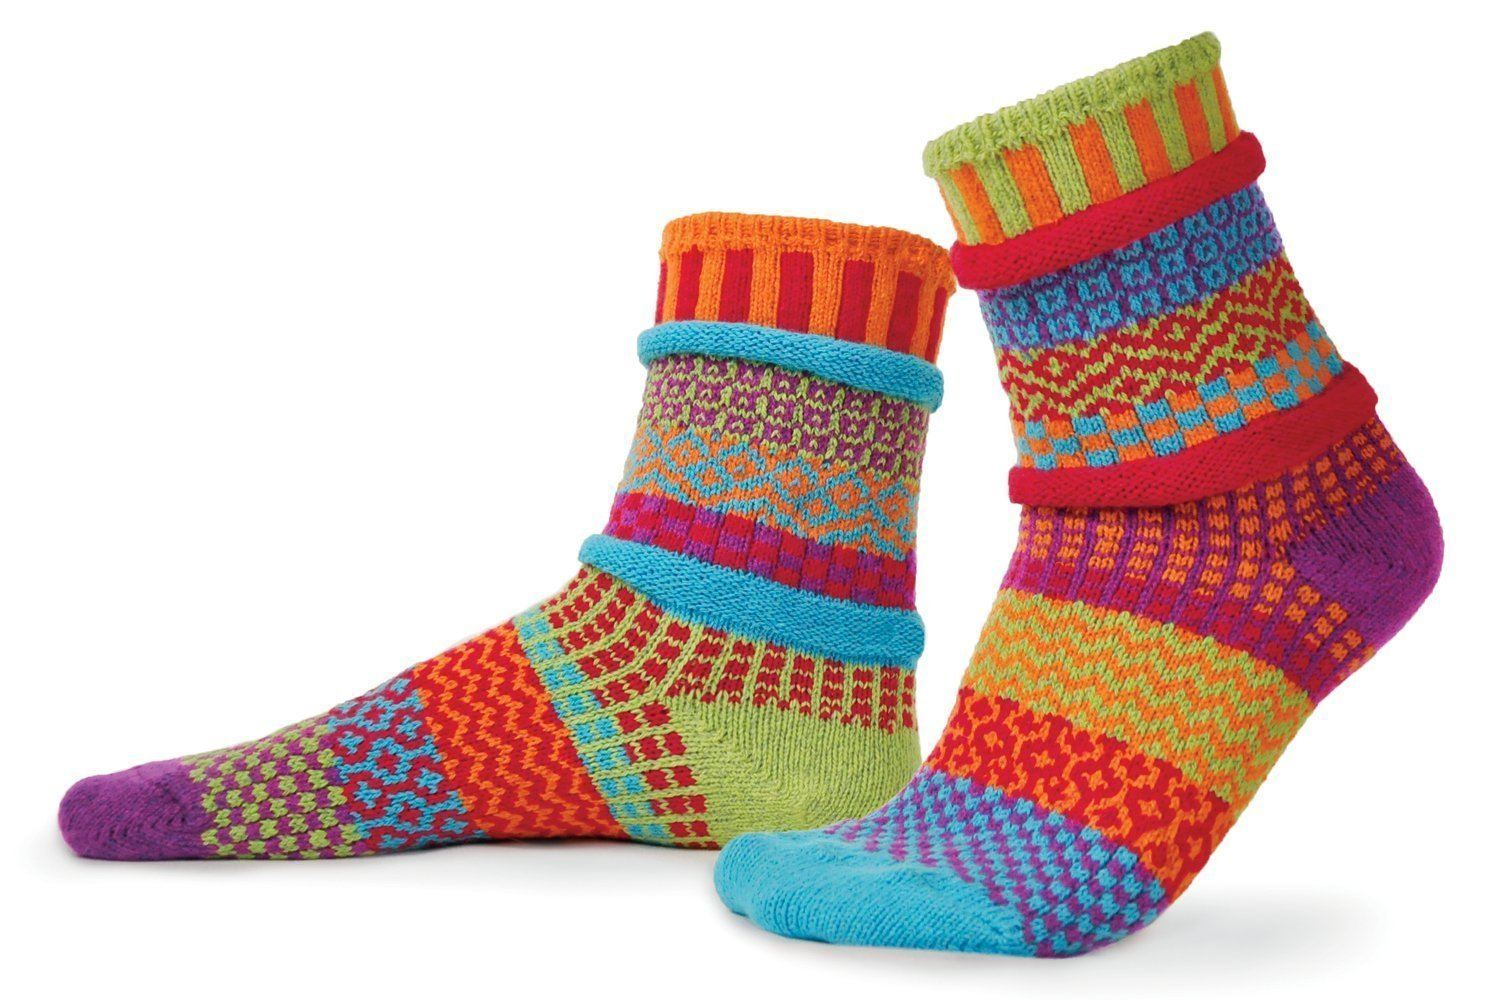 Solmate - Cosmos Crew Socks | Women's - Knock Your Socks Off